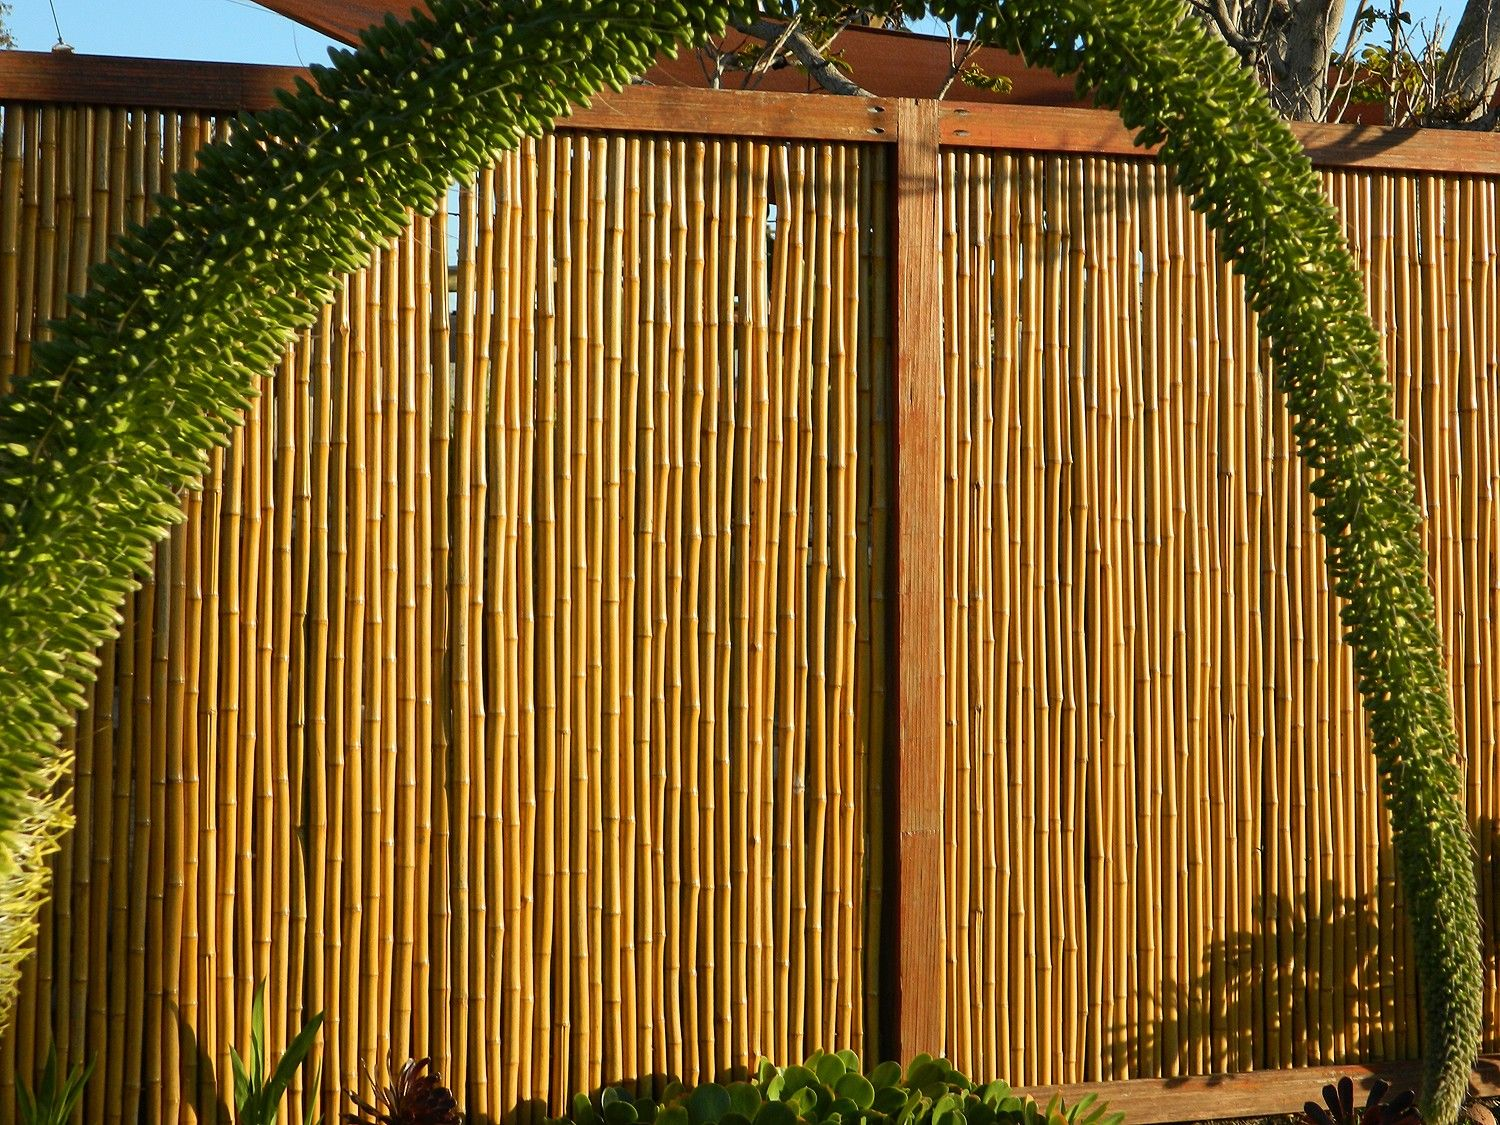 Natural Rolled Bamboo Fence 1 D X 4 H X 8 L Fence Design Bamboo Fence Backyard Fences